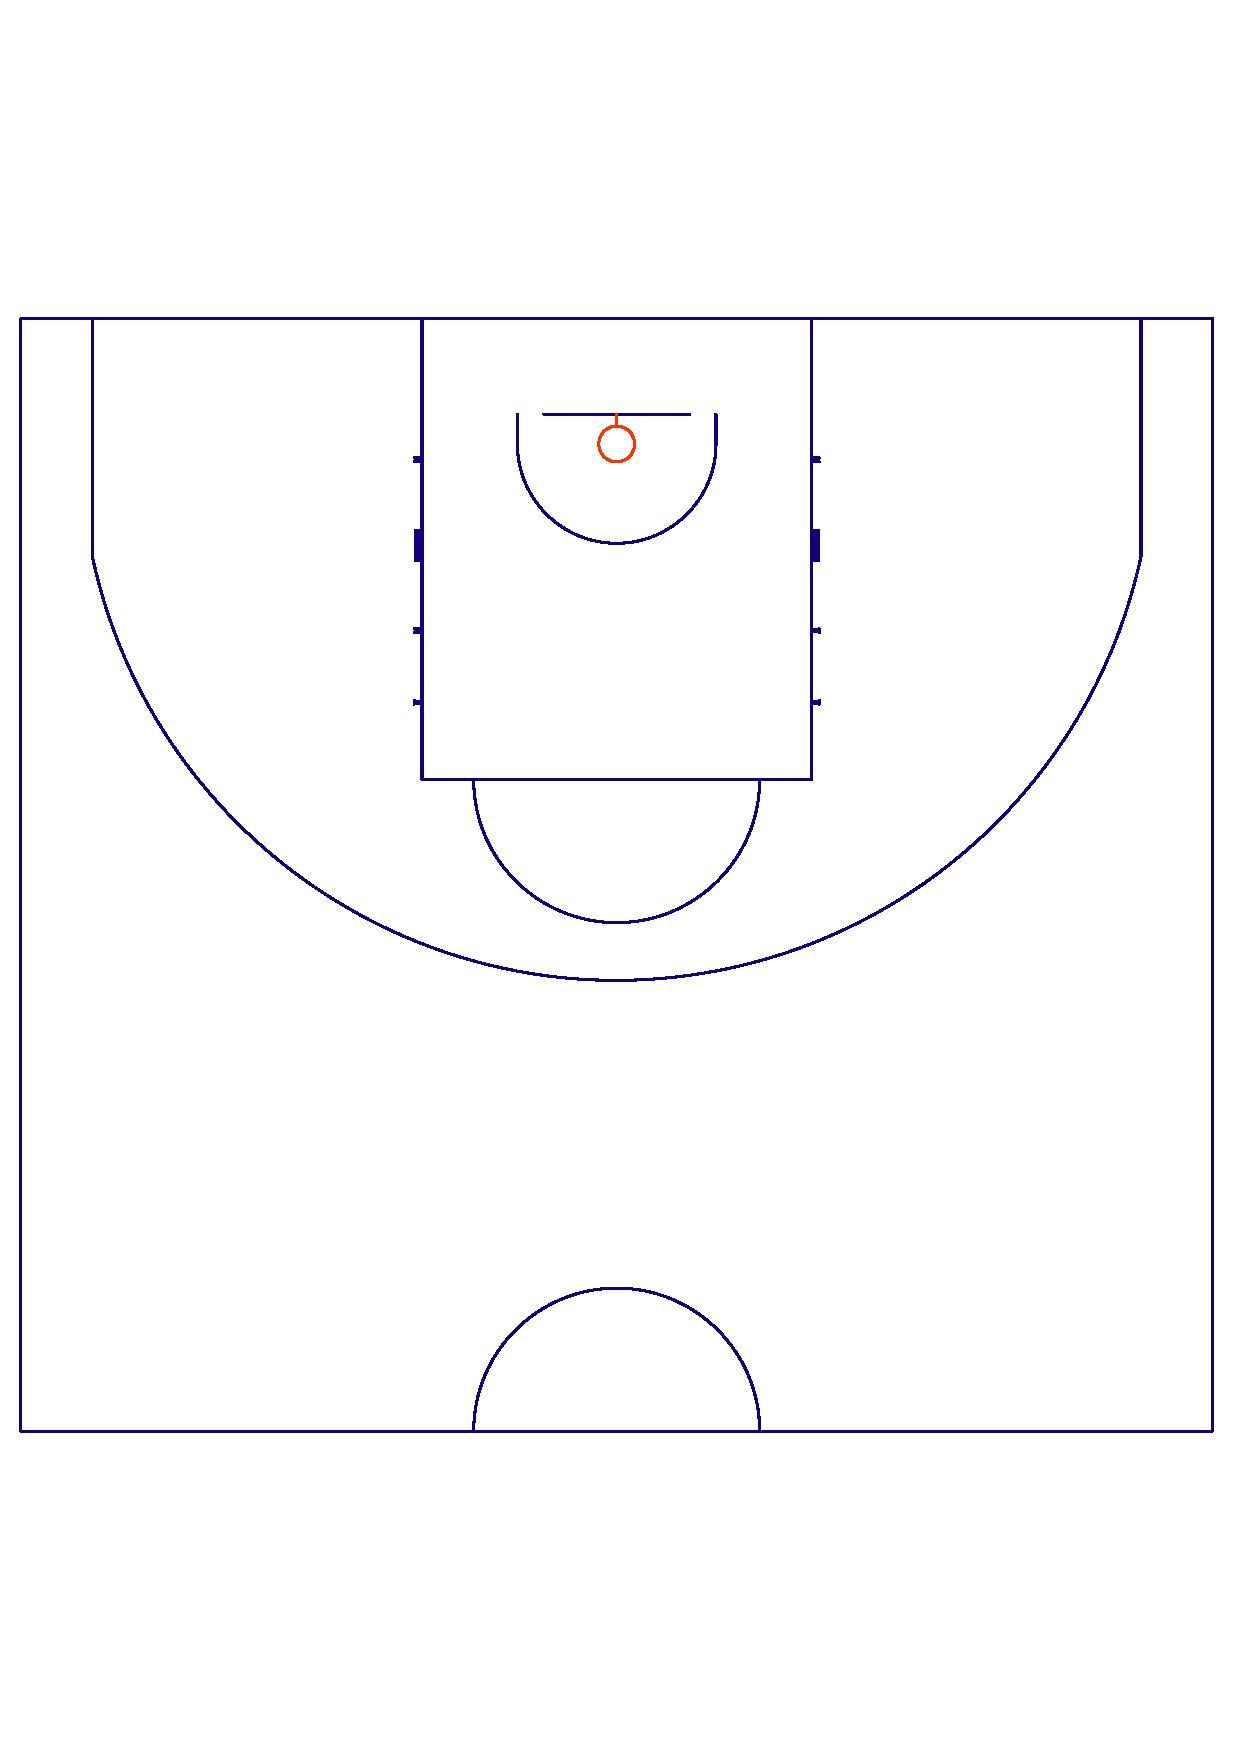 youth basketball court dimensions diagram kawasaki klf300c wiring nba half geek stanito com file fiba 2010 pdf wikimedia commons rh org design